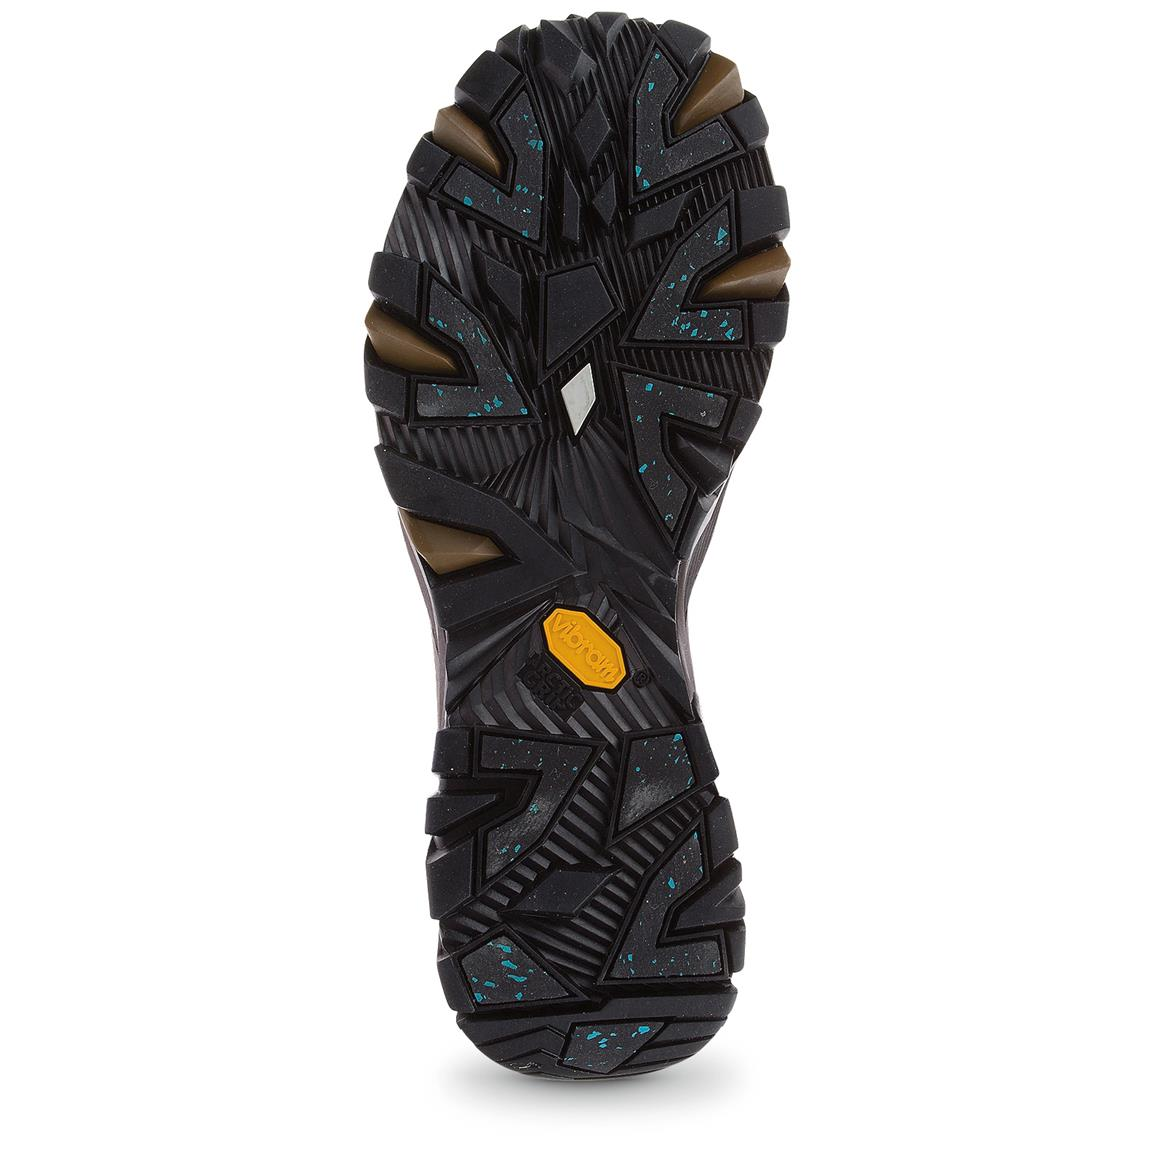 Vibram Arctic Grip outsole offers amazing traction on ice and slippers surfaces